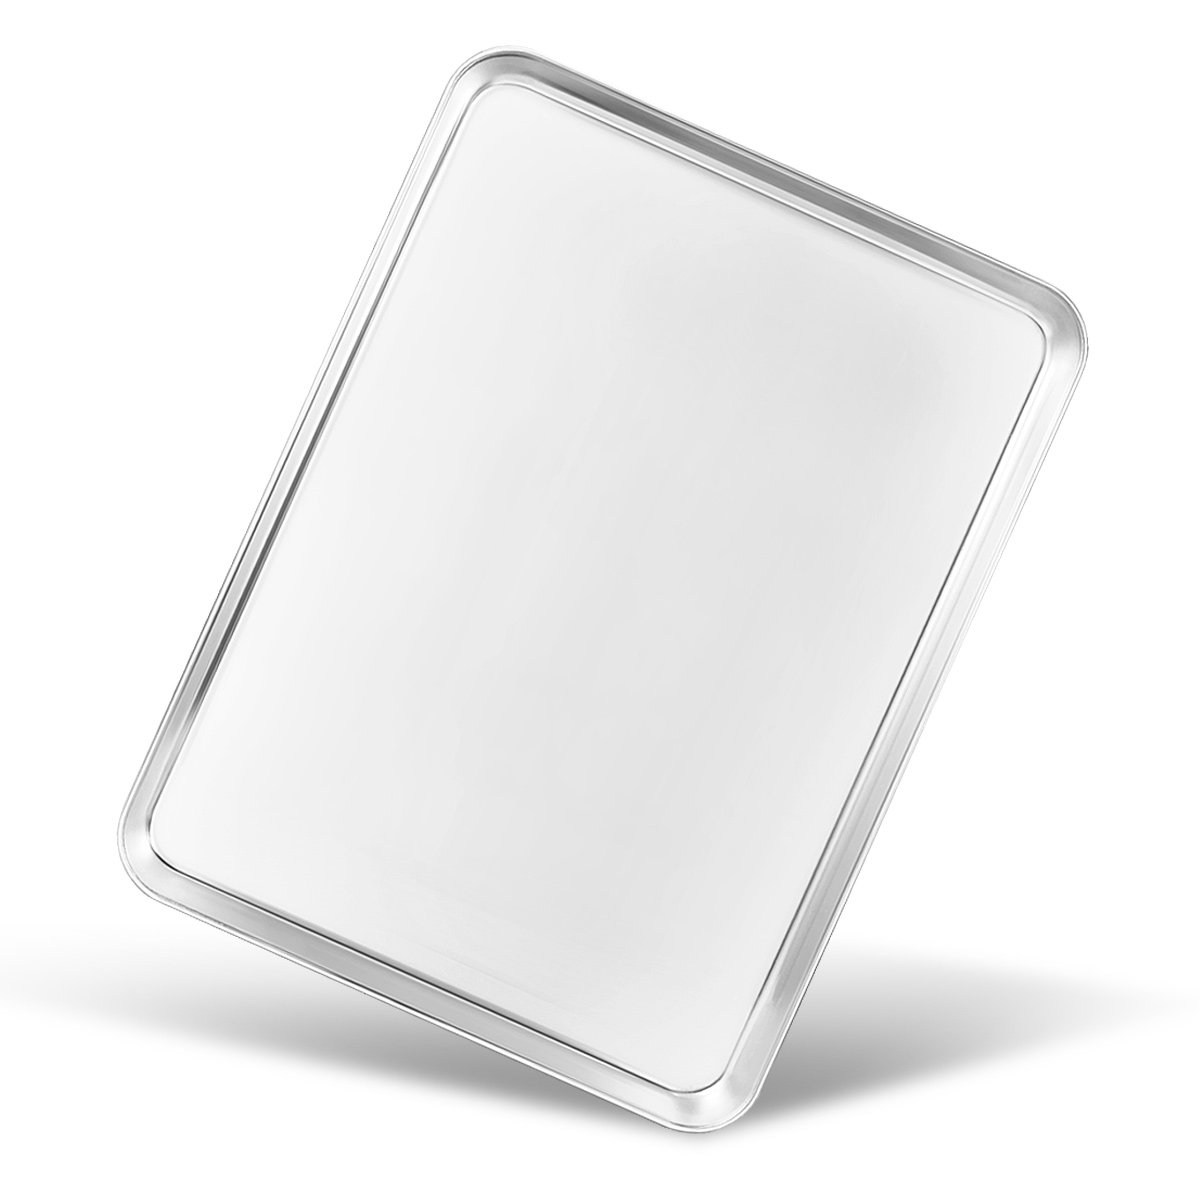 Bastwe Baking Sheet, Stainless Steel Cookie Sheet Baking Tray Pan, Professional Bakeware, Rectangle Size 16×12×1 inch, Healthy & Non Toxic, Mirror Finish & Rust Free, Easy Clean & Dishwasher Safe